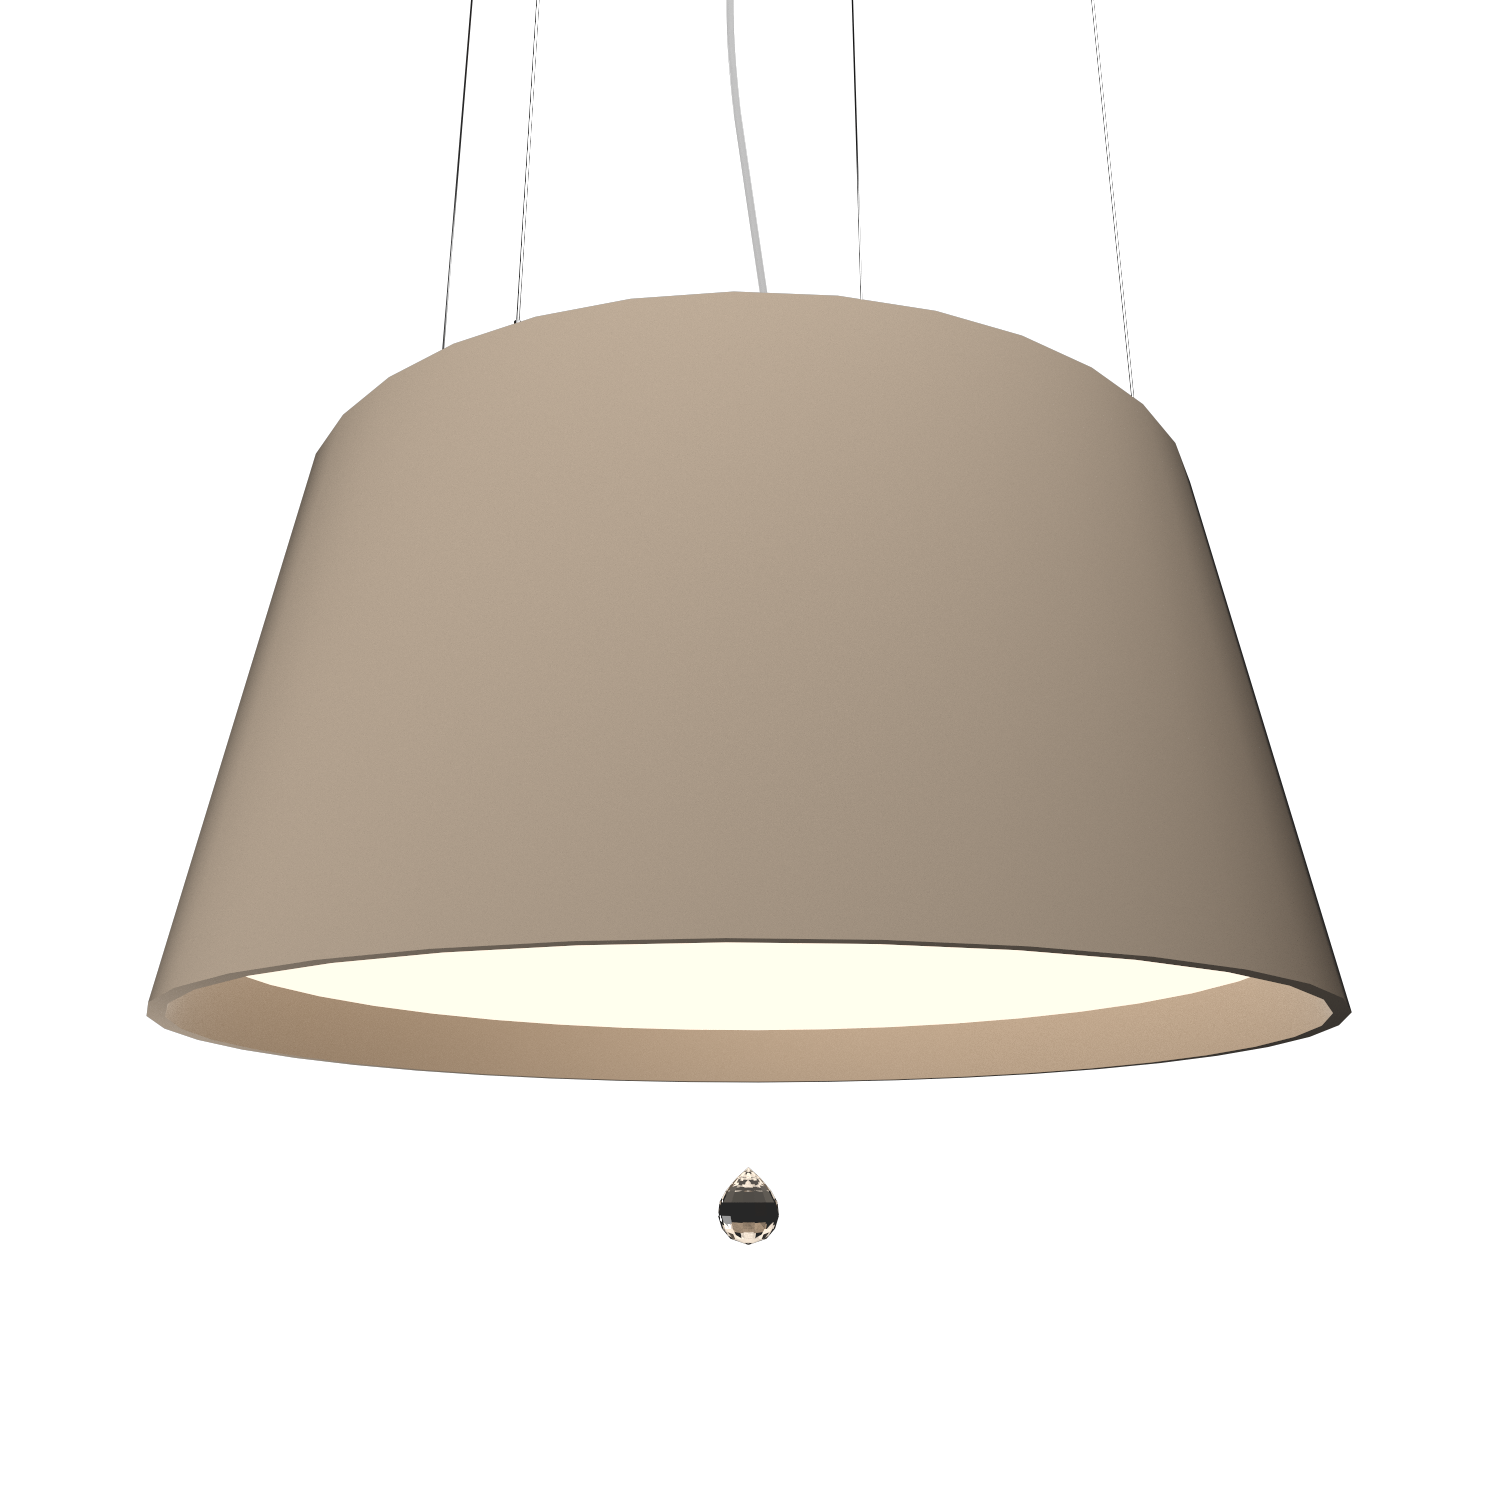 Pendant Lamp Conical with Crystal 255C - Cristais Line Accord Lighting | 15. Cappuccino